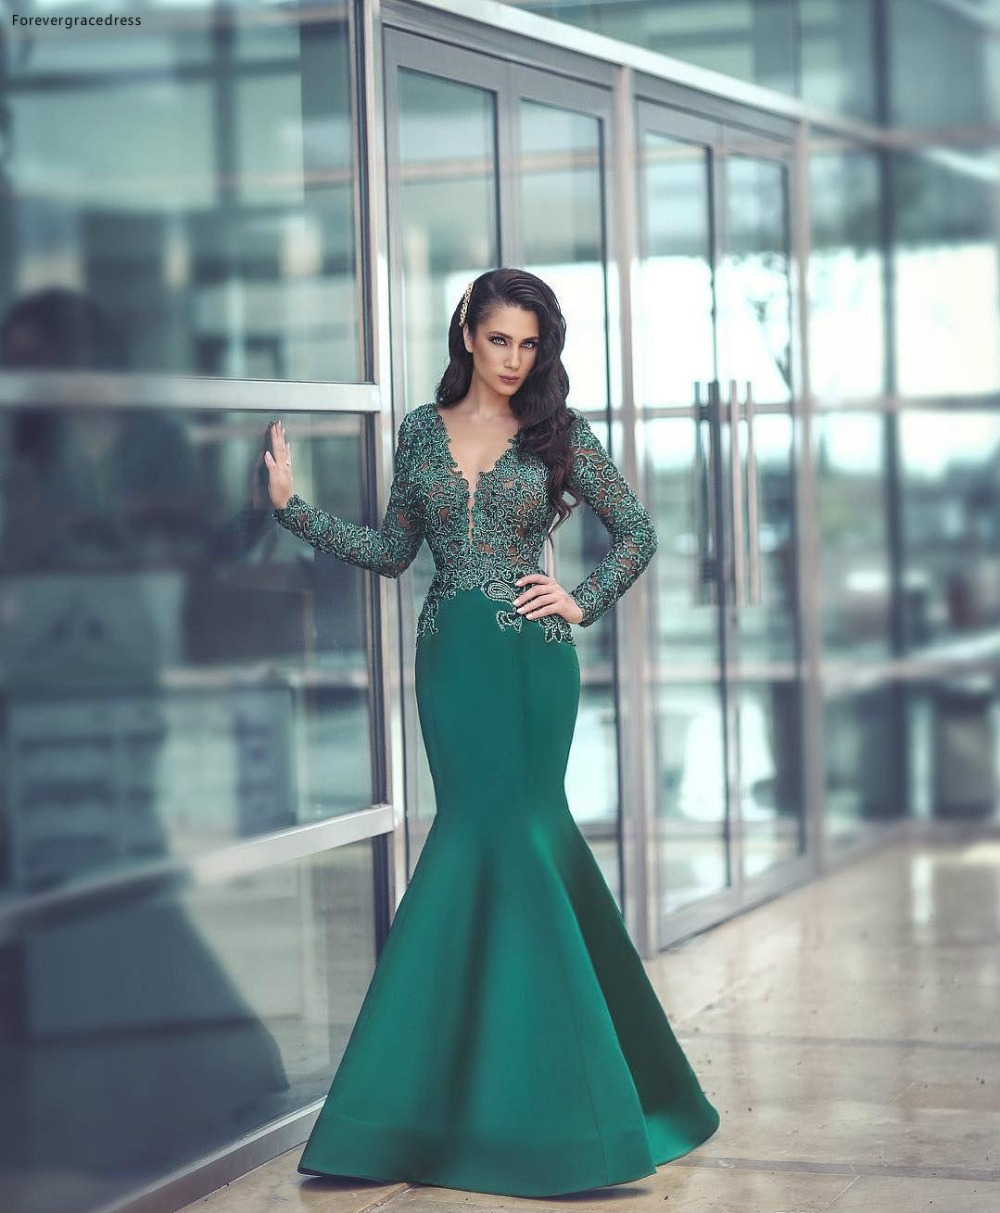 2018 Sexy Sheer Neck Dark Green Mermaid Evening Dresses Illusion Lace Appliques Long Sleeves Satin Floor-Length Formal Wears Evening Gowns 119 (1)